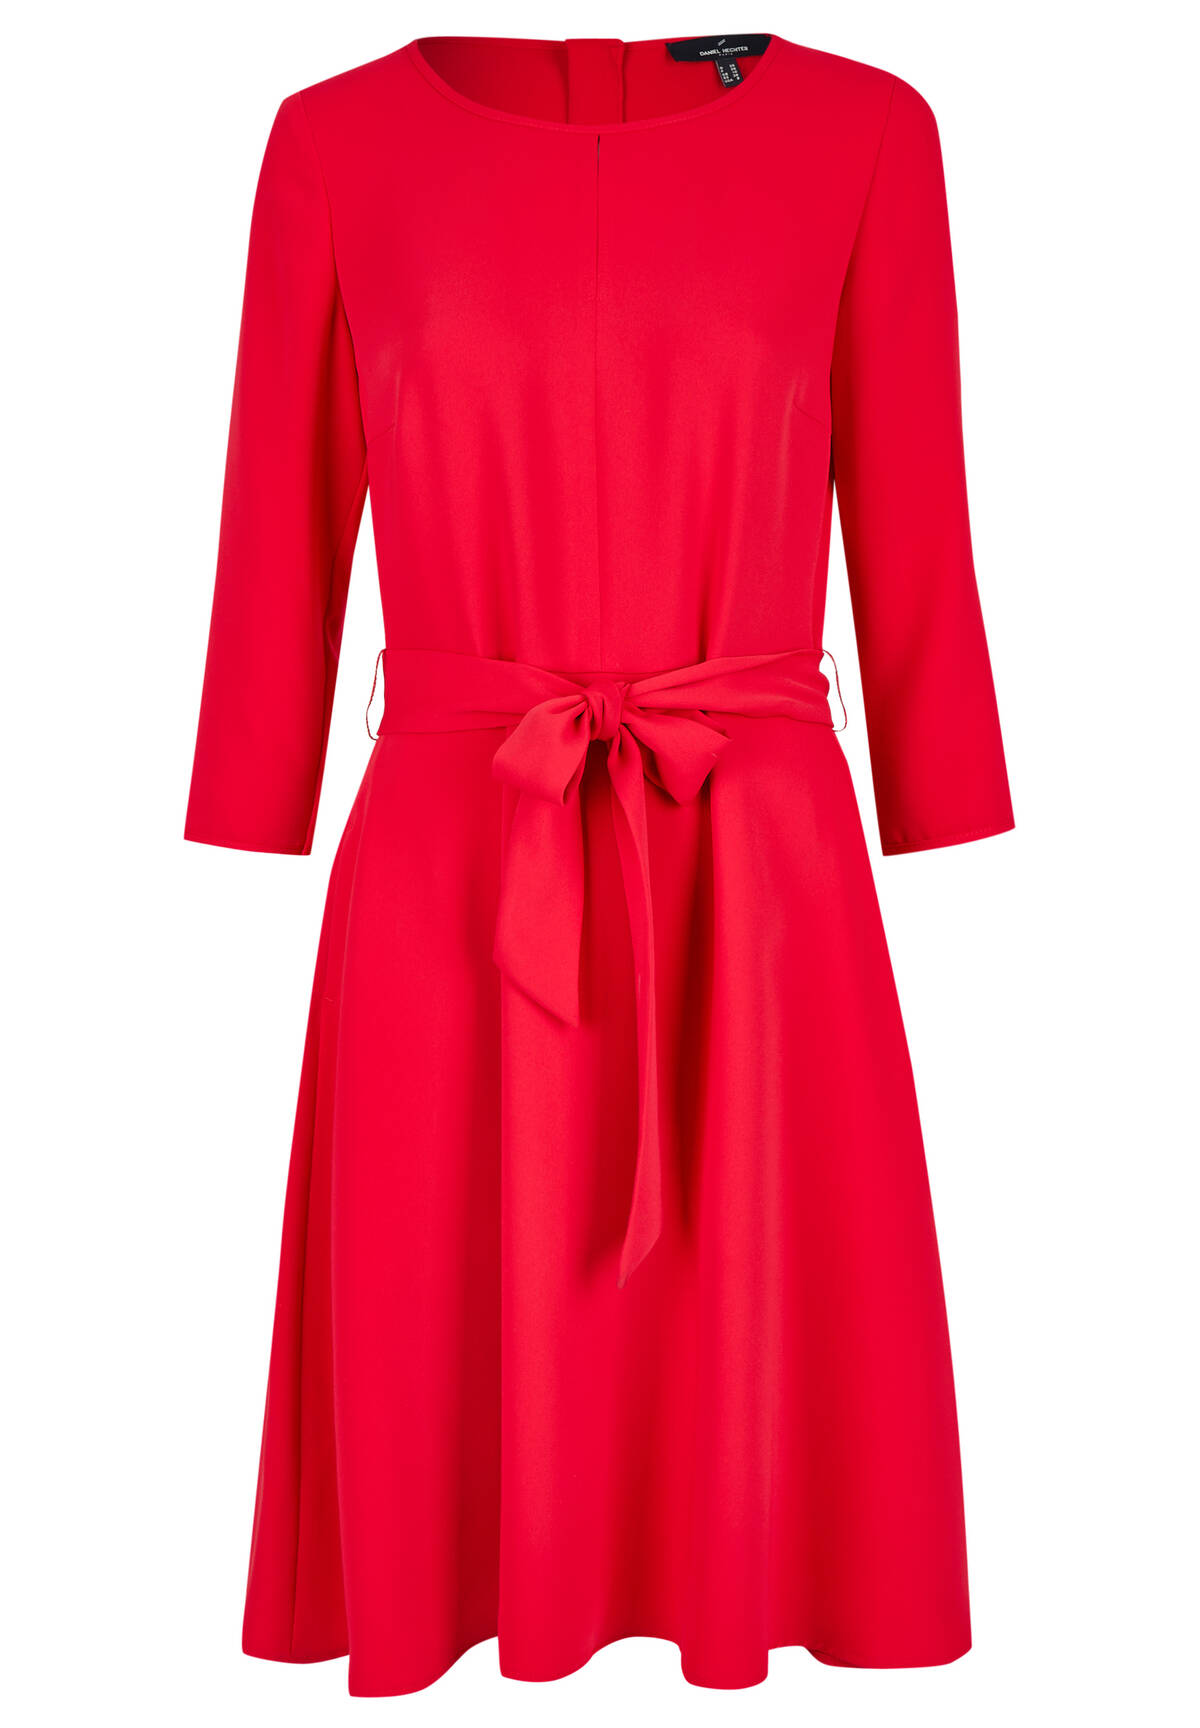 Modernes Kleid / Dress